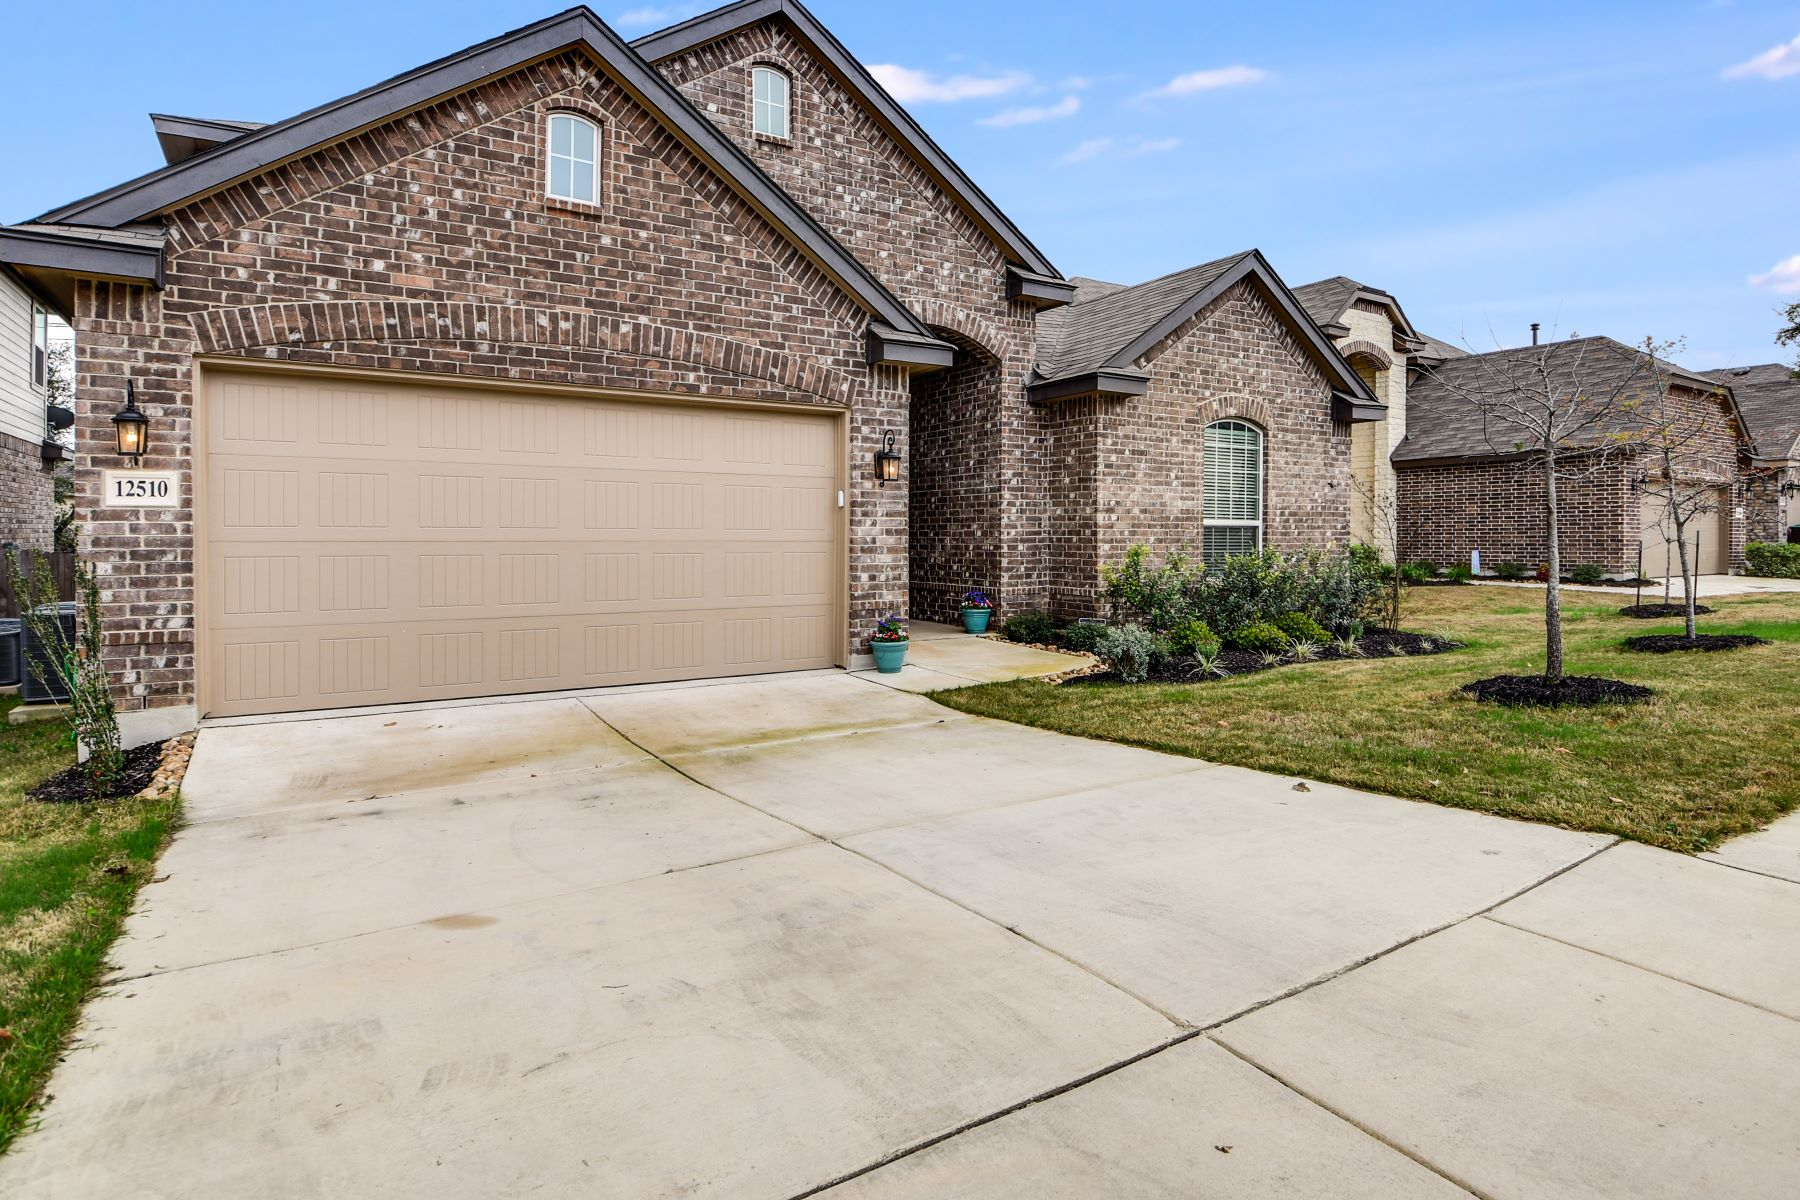 Additional photo for property listing at Impressive 1.5 Story in Alamo Ranch 12510 Loving Mill San Antonio, Texas 78253 United States